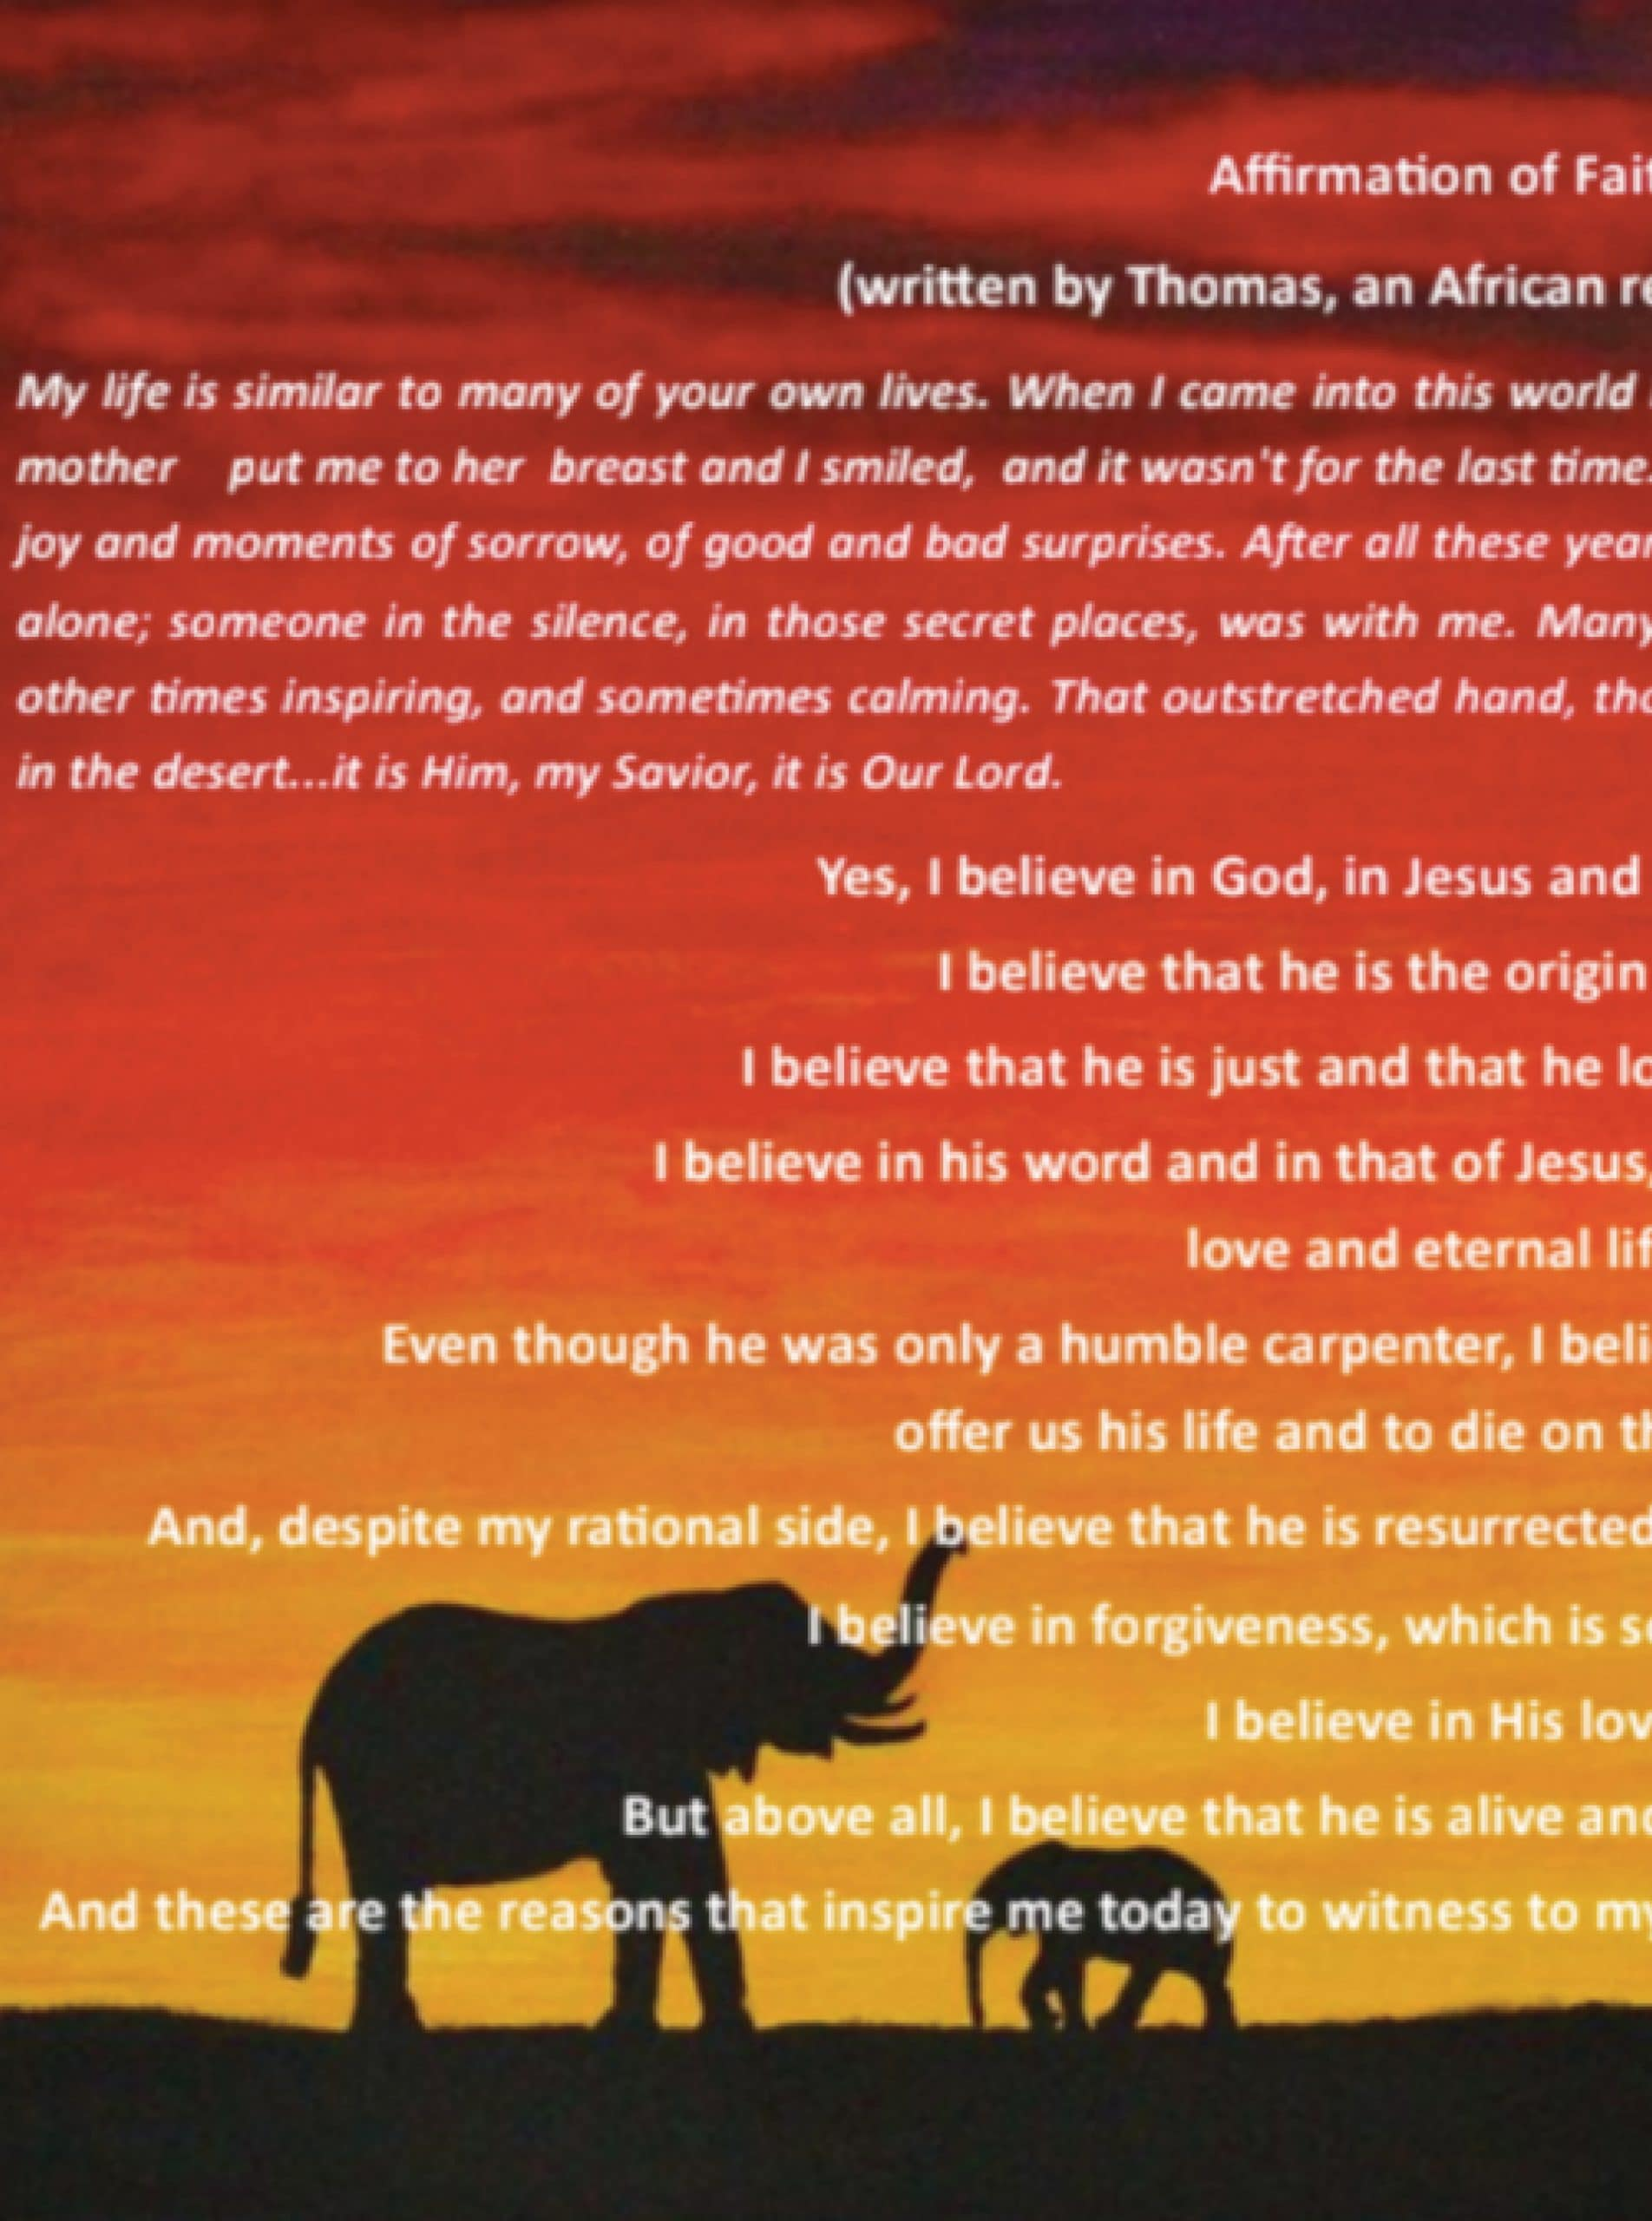 African Affirmation of Faith